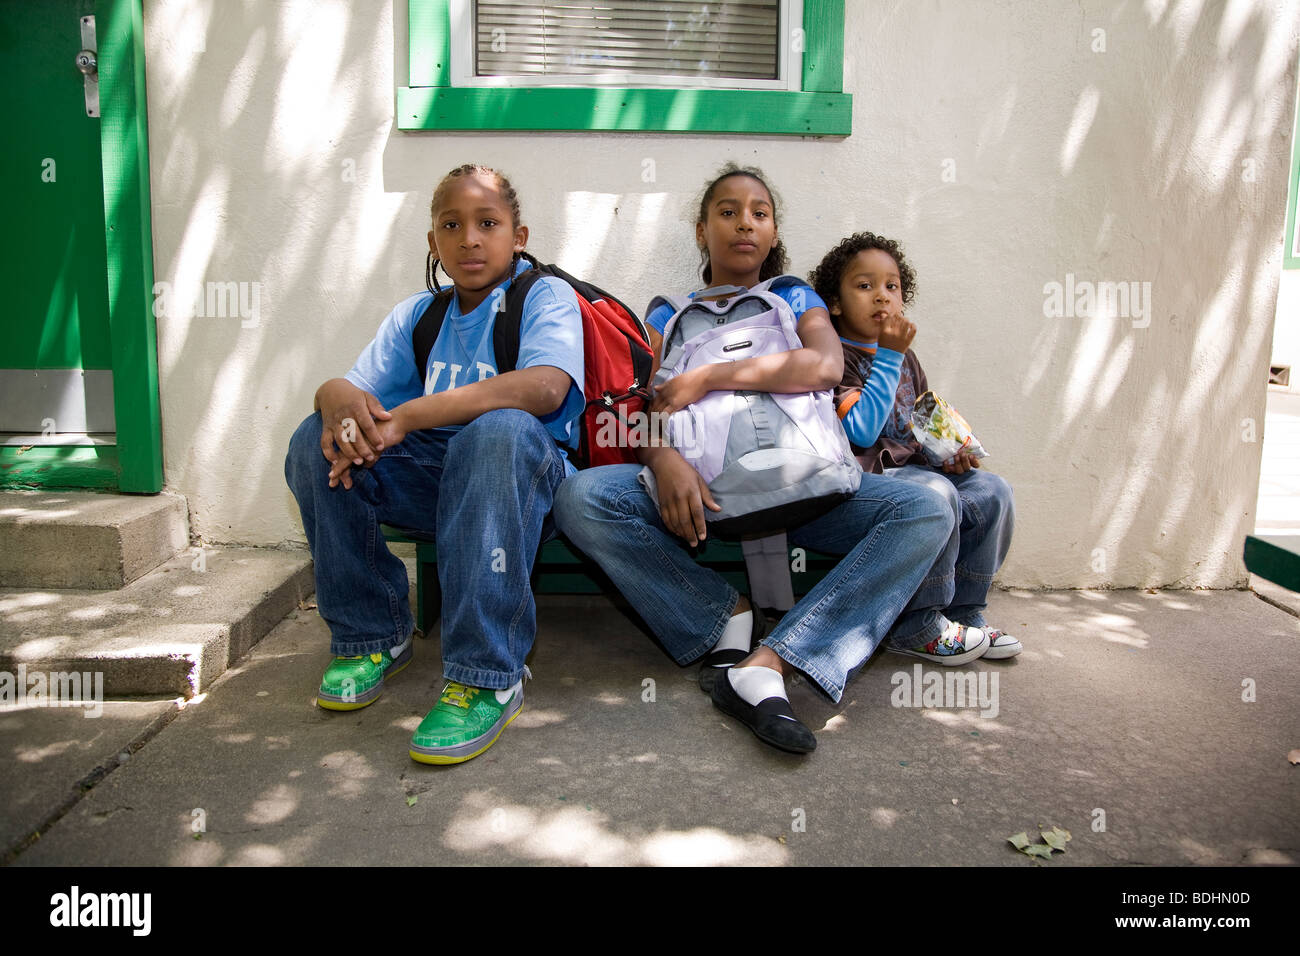 Selena Pina, a homeless mother of four, with her children at the Mustard Seed School at Loaves and Fishes in Sacramento, Stock Photo